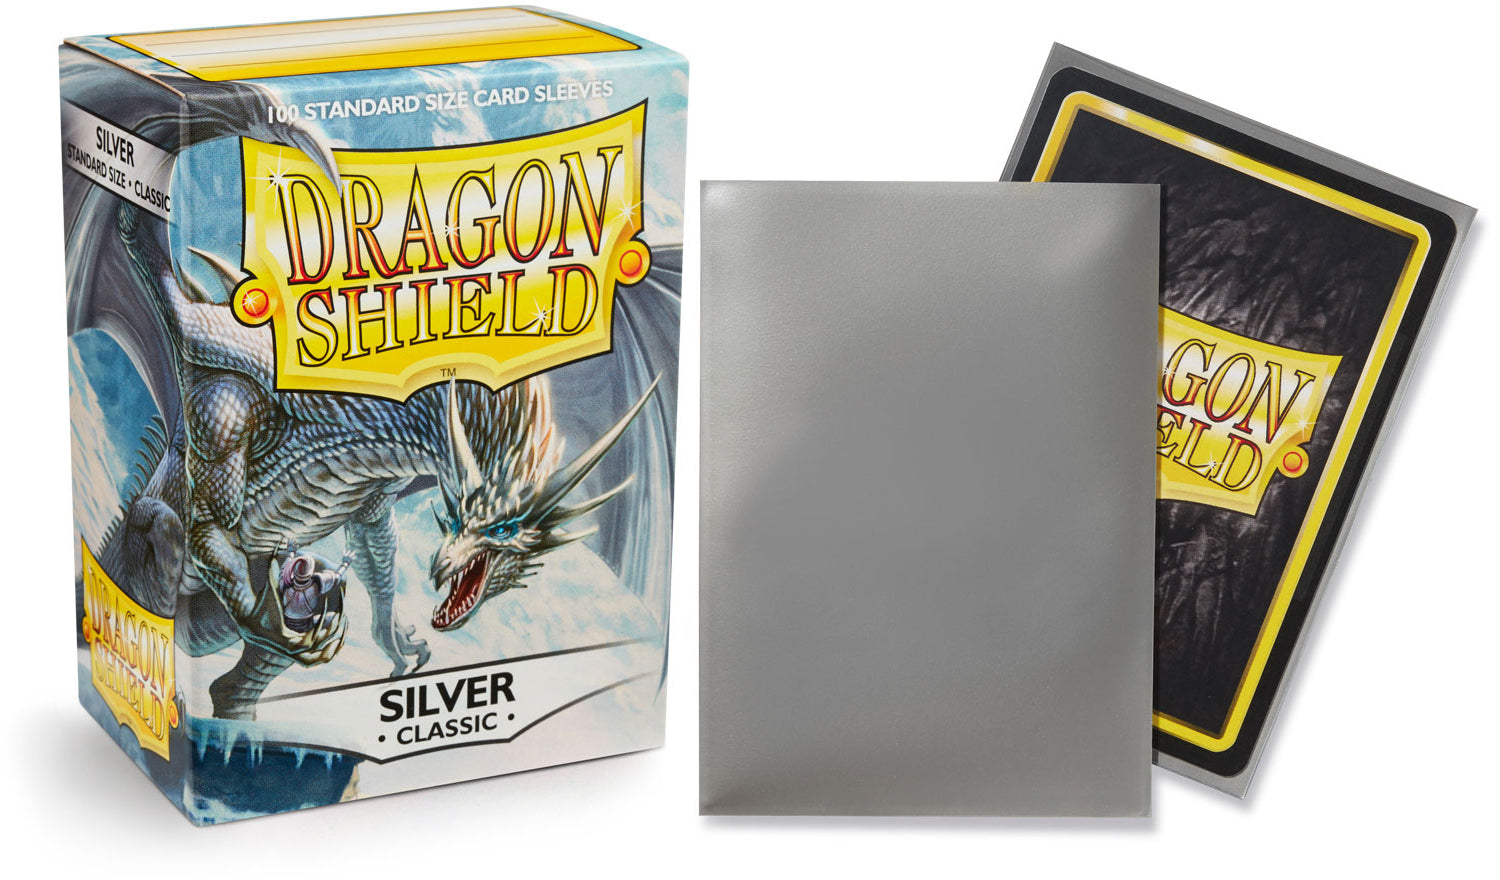 Classic Silver Dragon Shield Sleeves (100ct)-Dragon Shield-Multizone: Comics And Games | Multizone: Comics And Games